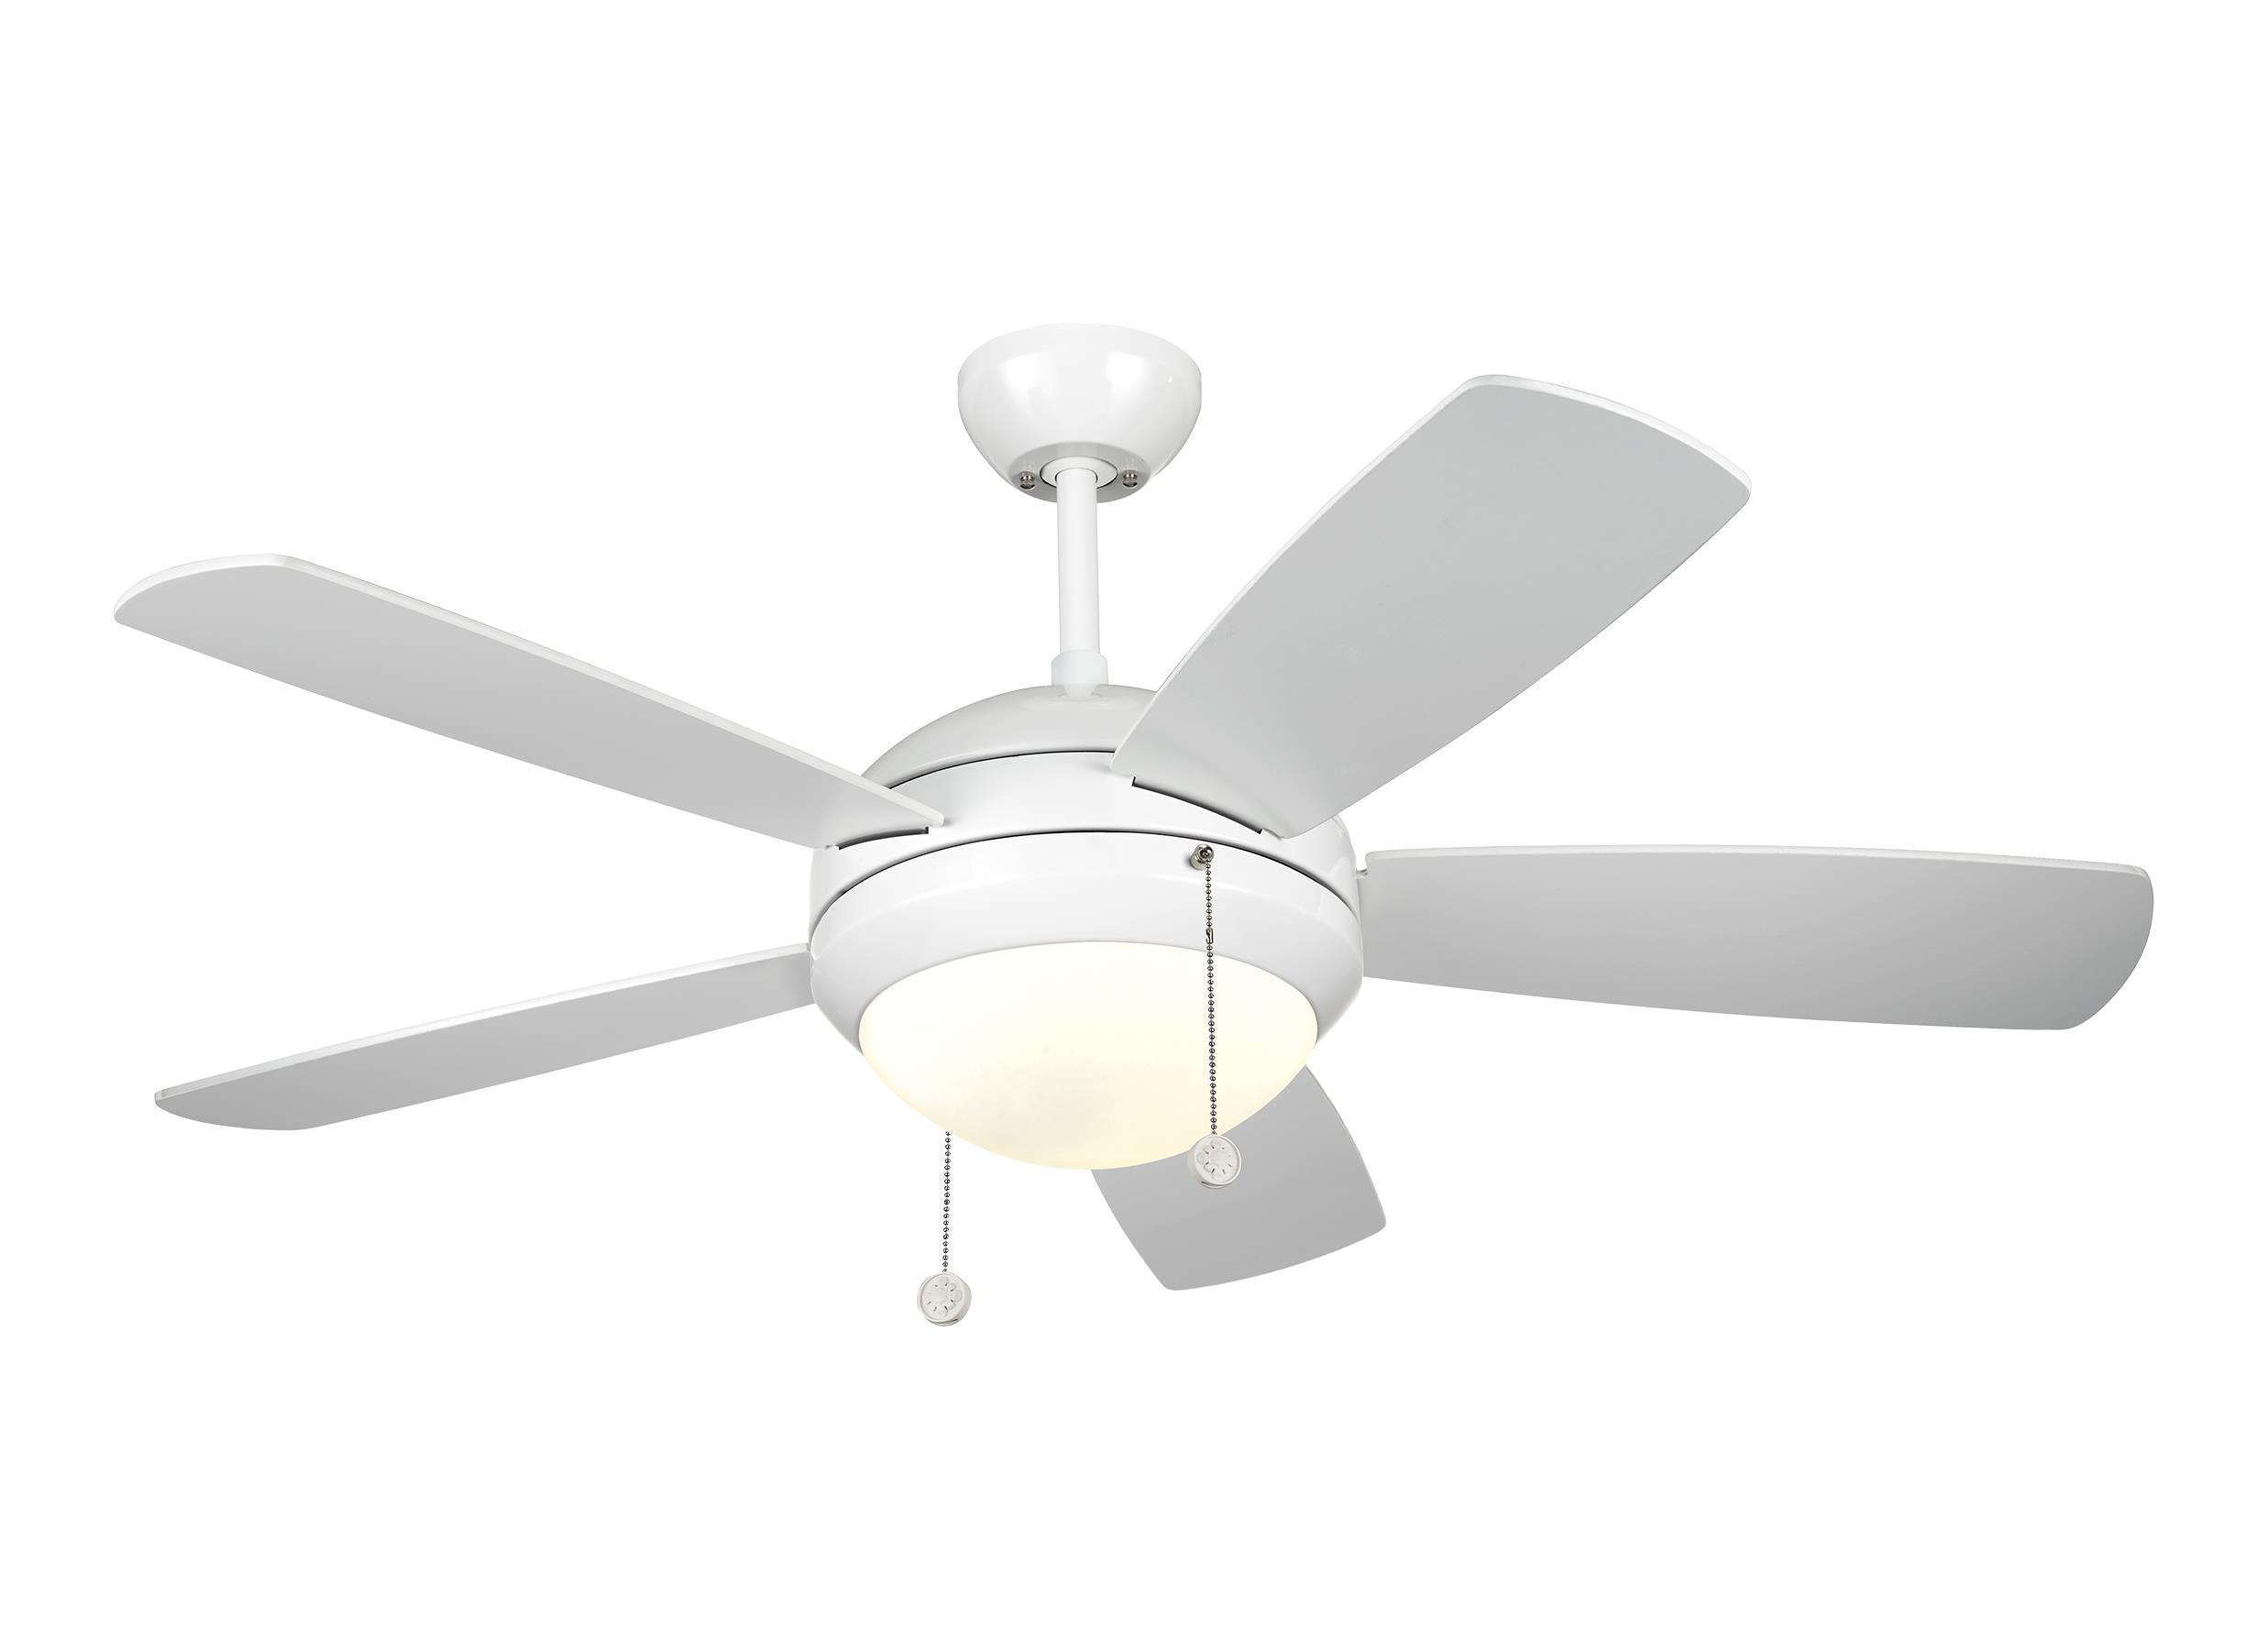 catalog semi falcon collections blade flush flat led rejuvenation ceiling fan edited